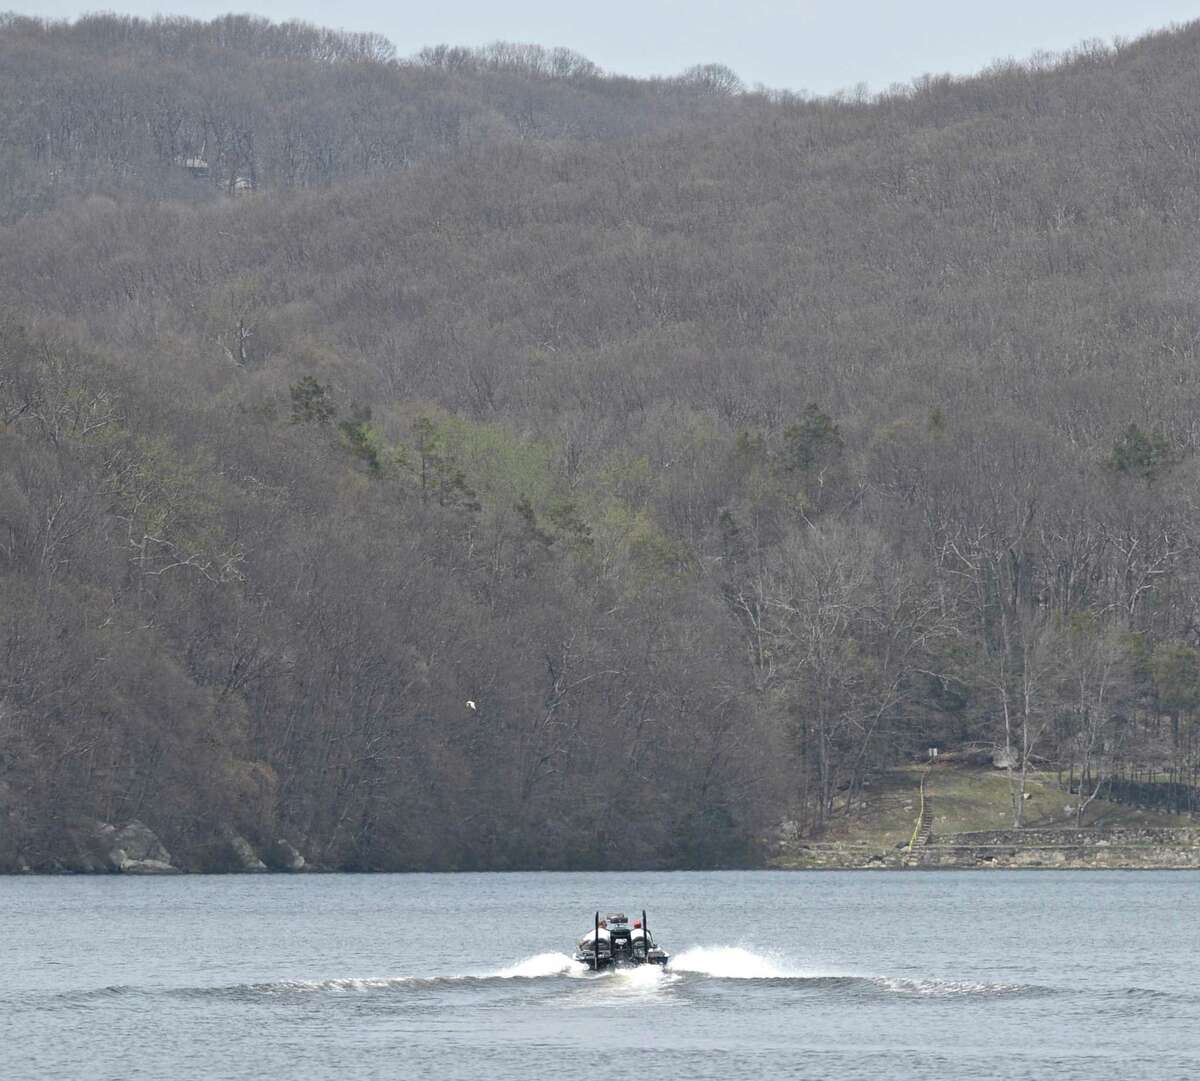 Aug. 1, 2001: Carbon monoxide from a motor boat's exhaust fumes may have contributed to the death of a 14-year-old boy who drowned in the lake. Christopher Iacovo and a friend were being towed behind a boat piloted by his father, Robert Iacovo. An autopsy showed that carbon monoxide in Iacovo's blood may have caused unconsciousness that contributed to his drowning. The teen slipped off the rear of the platform that was being towed. His body was recovered the next morning.